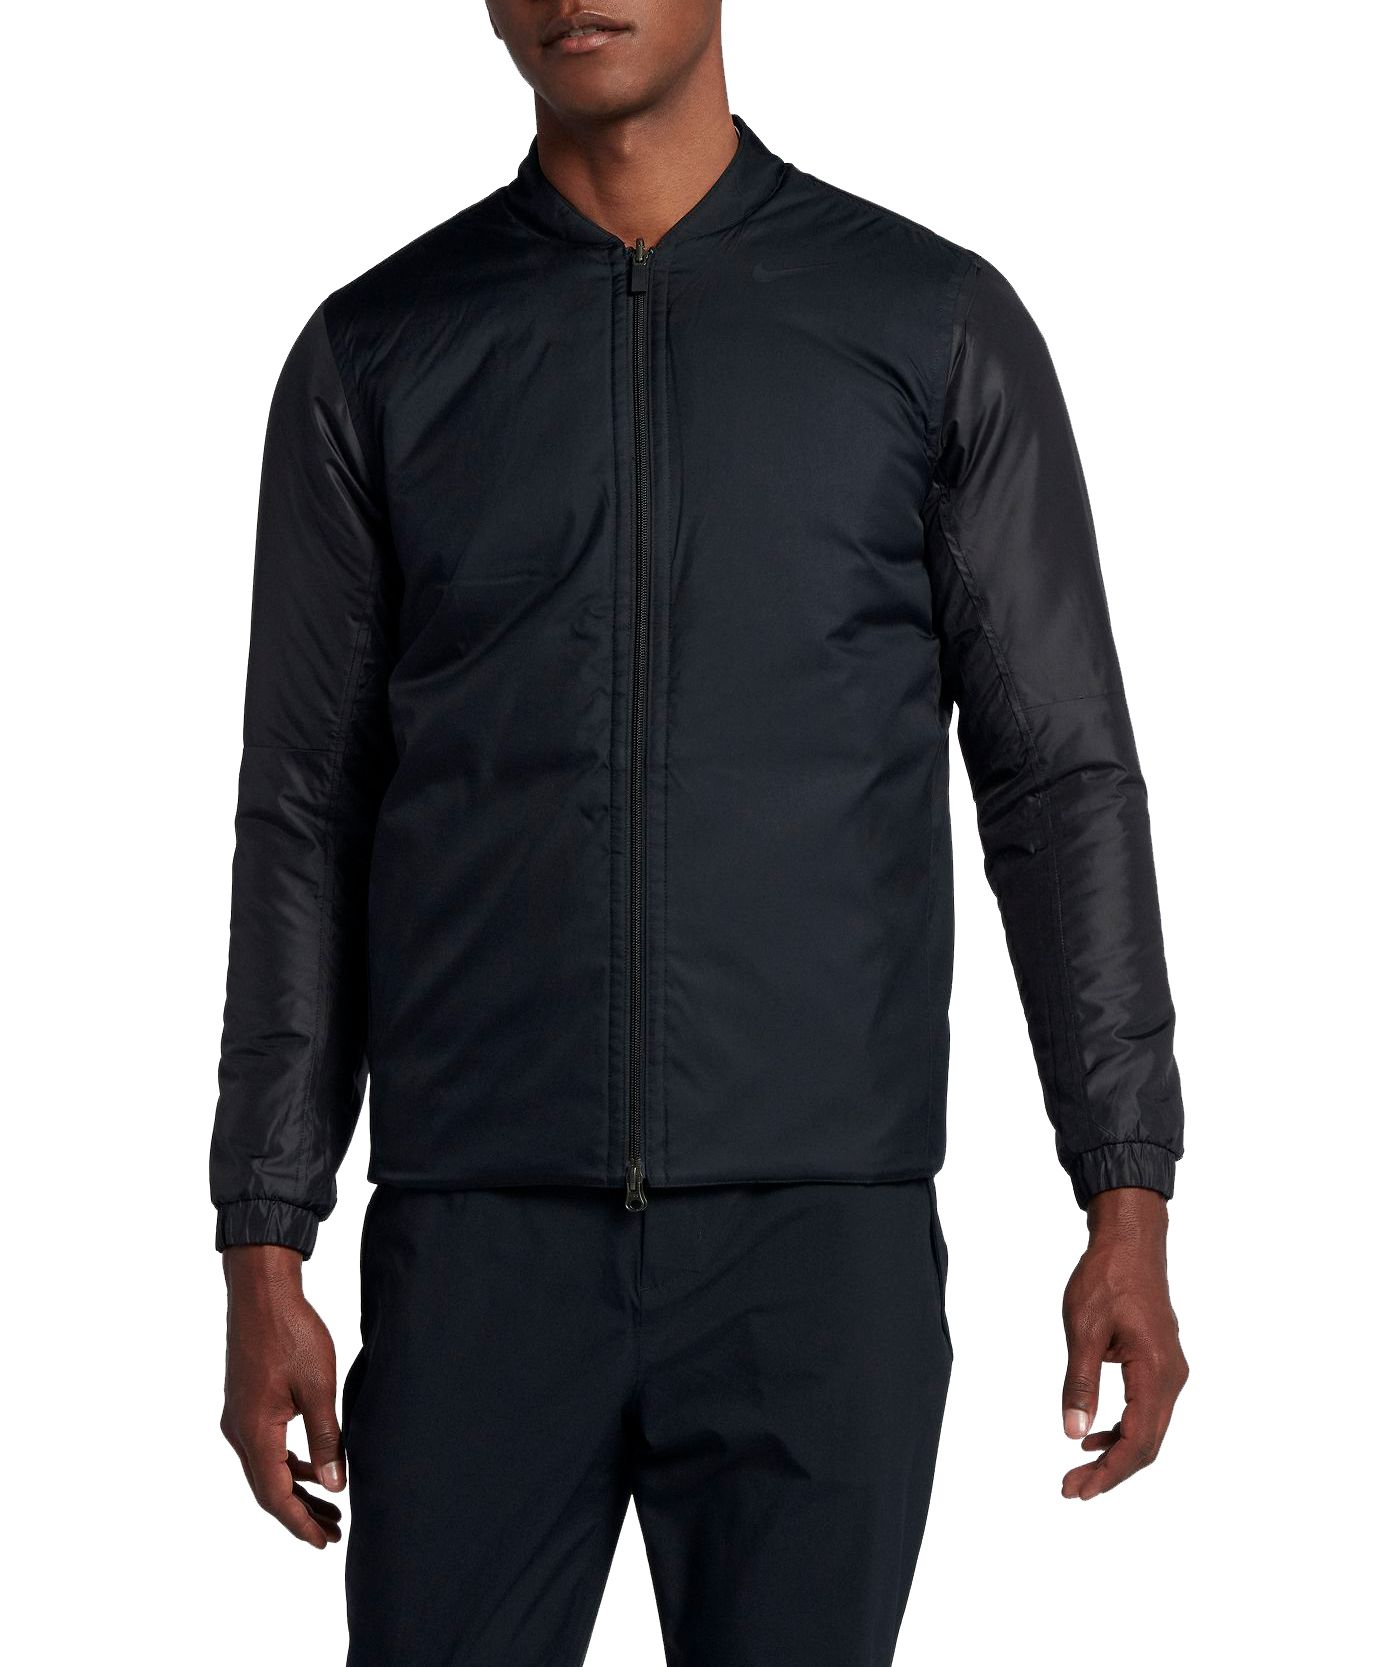 Nike Men's Insulated Golf Jacket